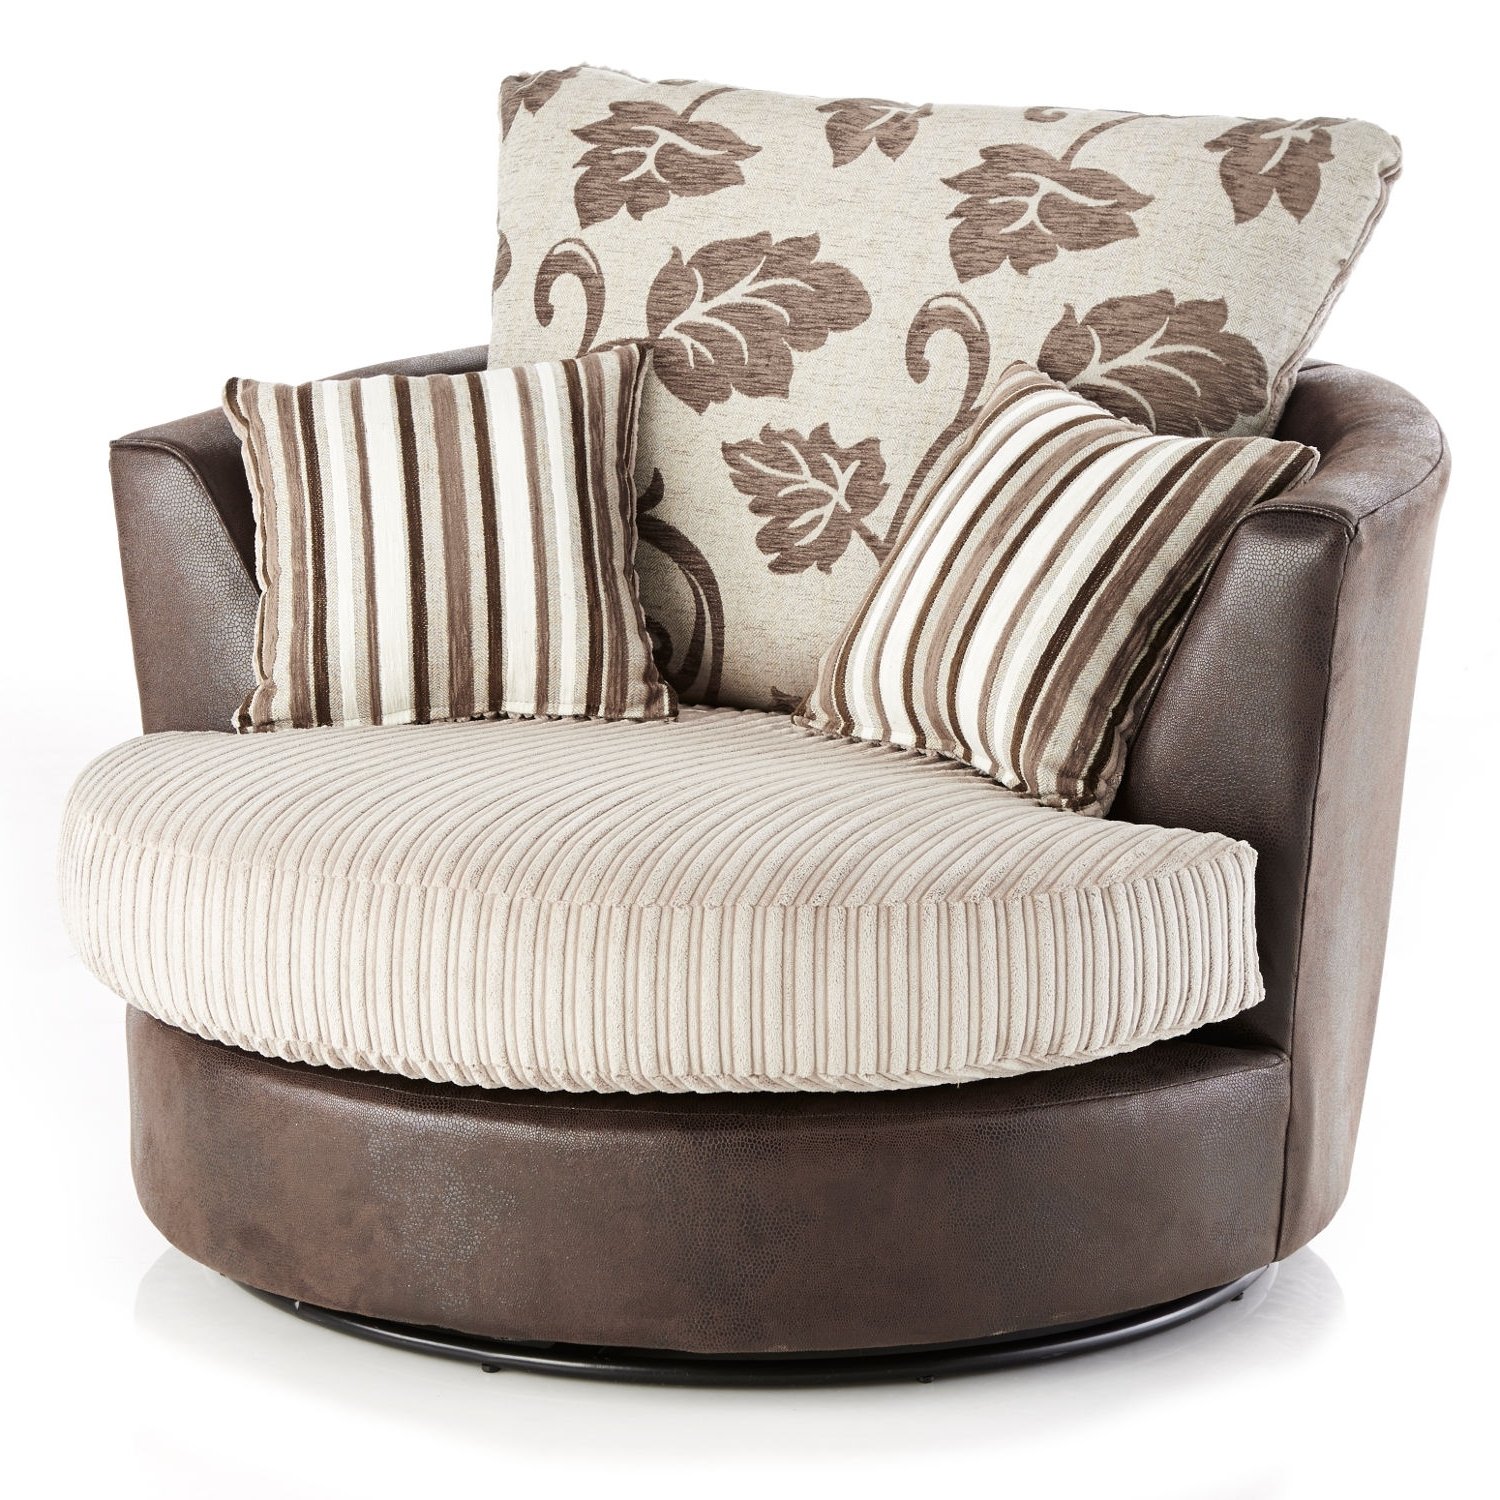 Lush Jumbo Cord Swivel Chair – Next Day Delivery Lush Jumbo Cord Inside Well Known Sofas With Swivel Chair (View 8 of 15)